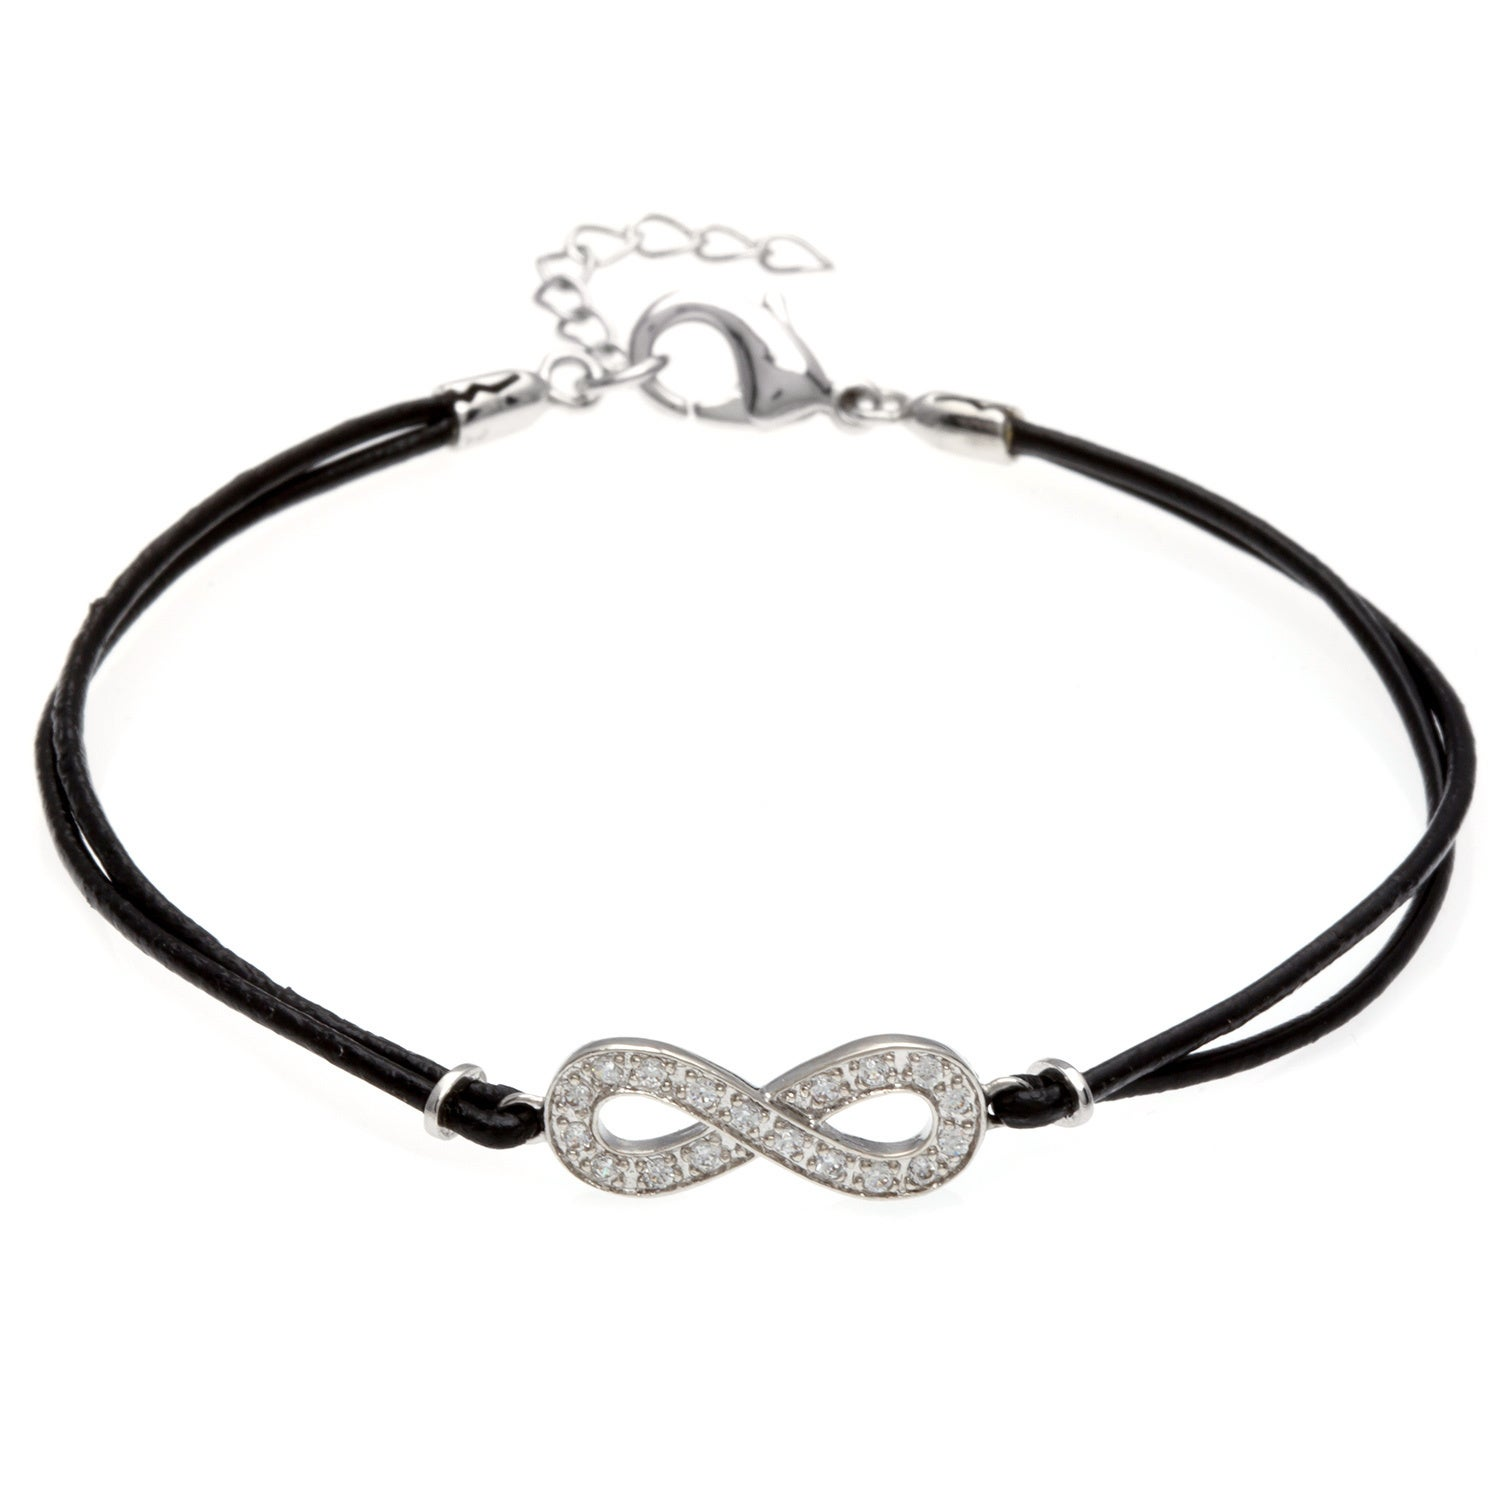 infinity aurorehavenne silver bracelet jewel n aurore havenne minimalist collection products packshot bijou